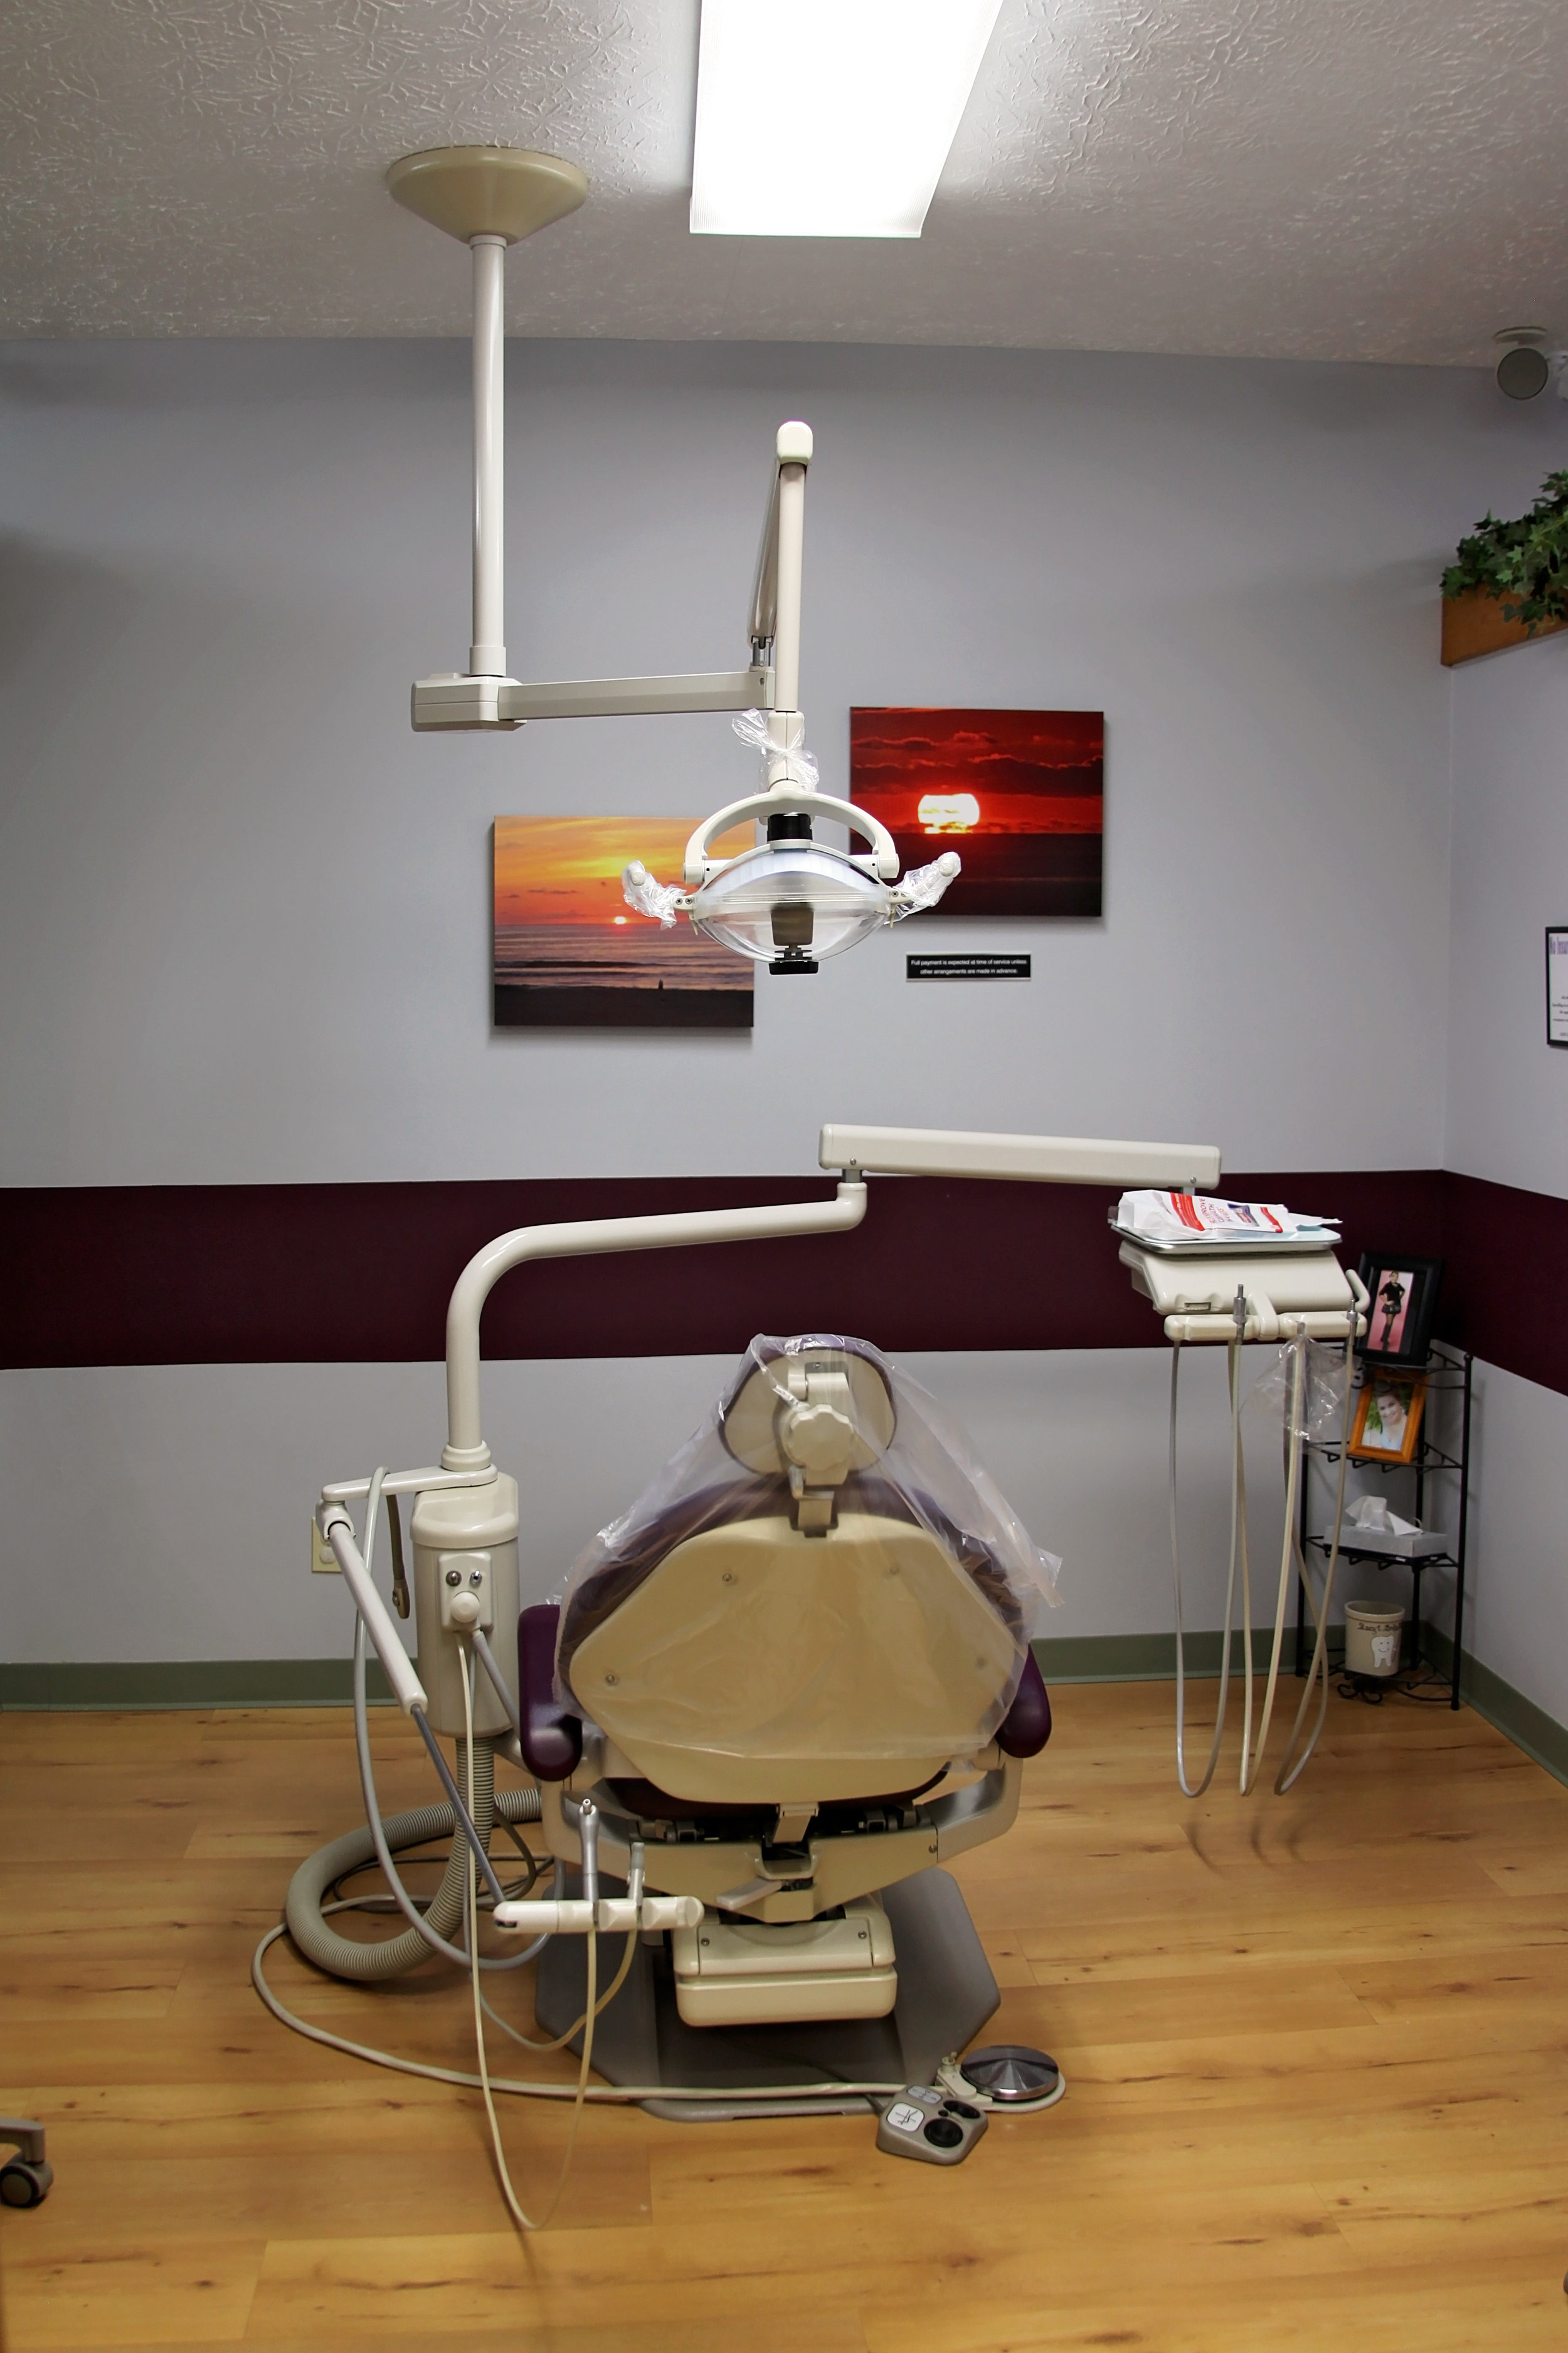 An operatory chair ready for the next patient at stacy davis dds llc